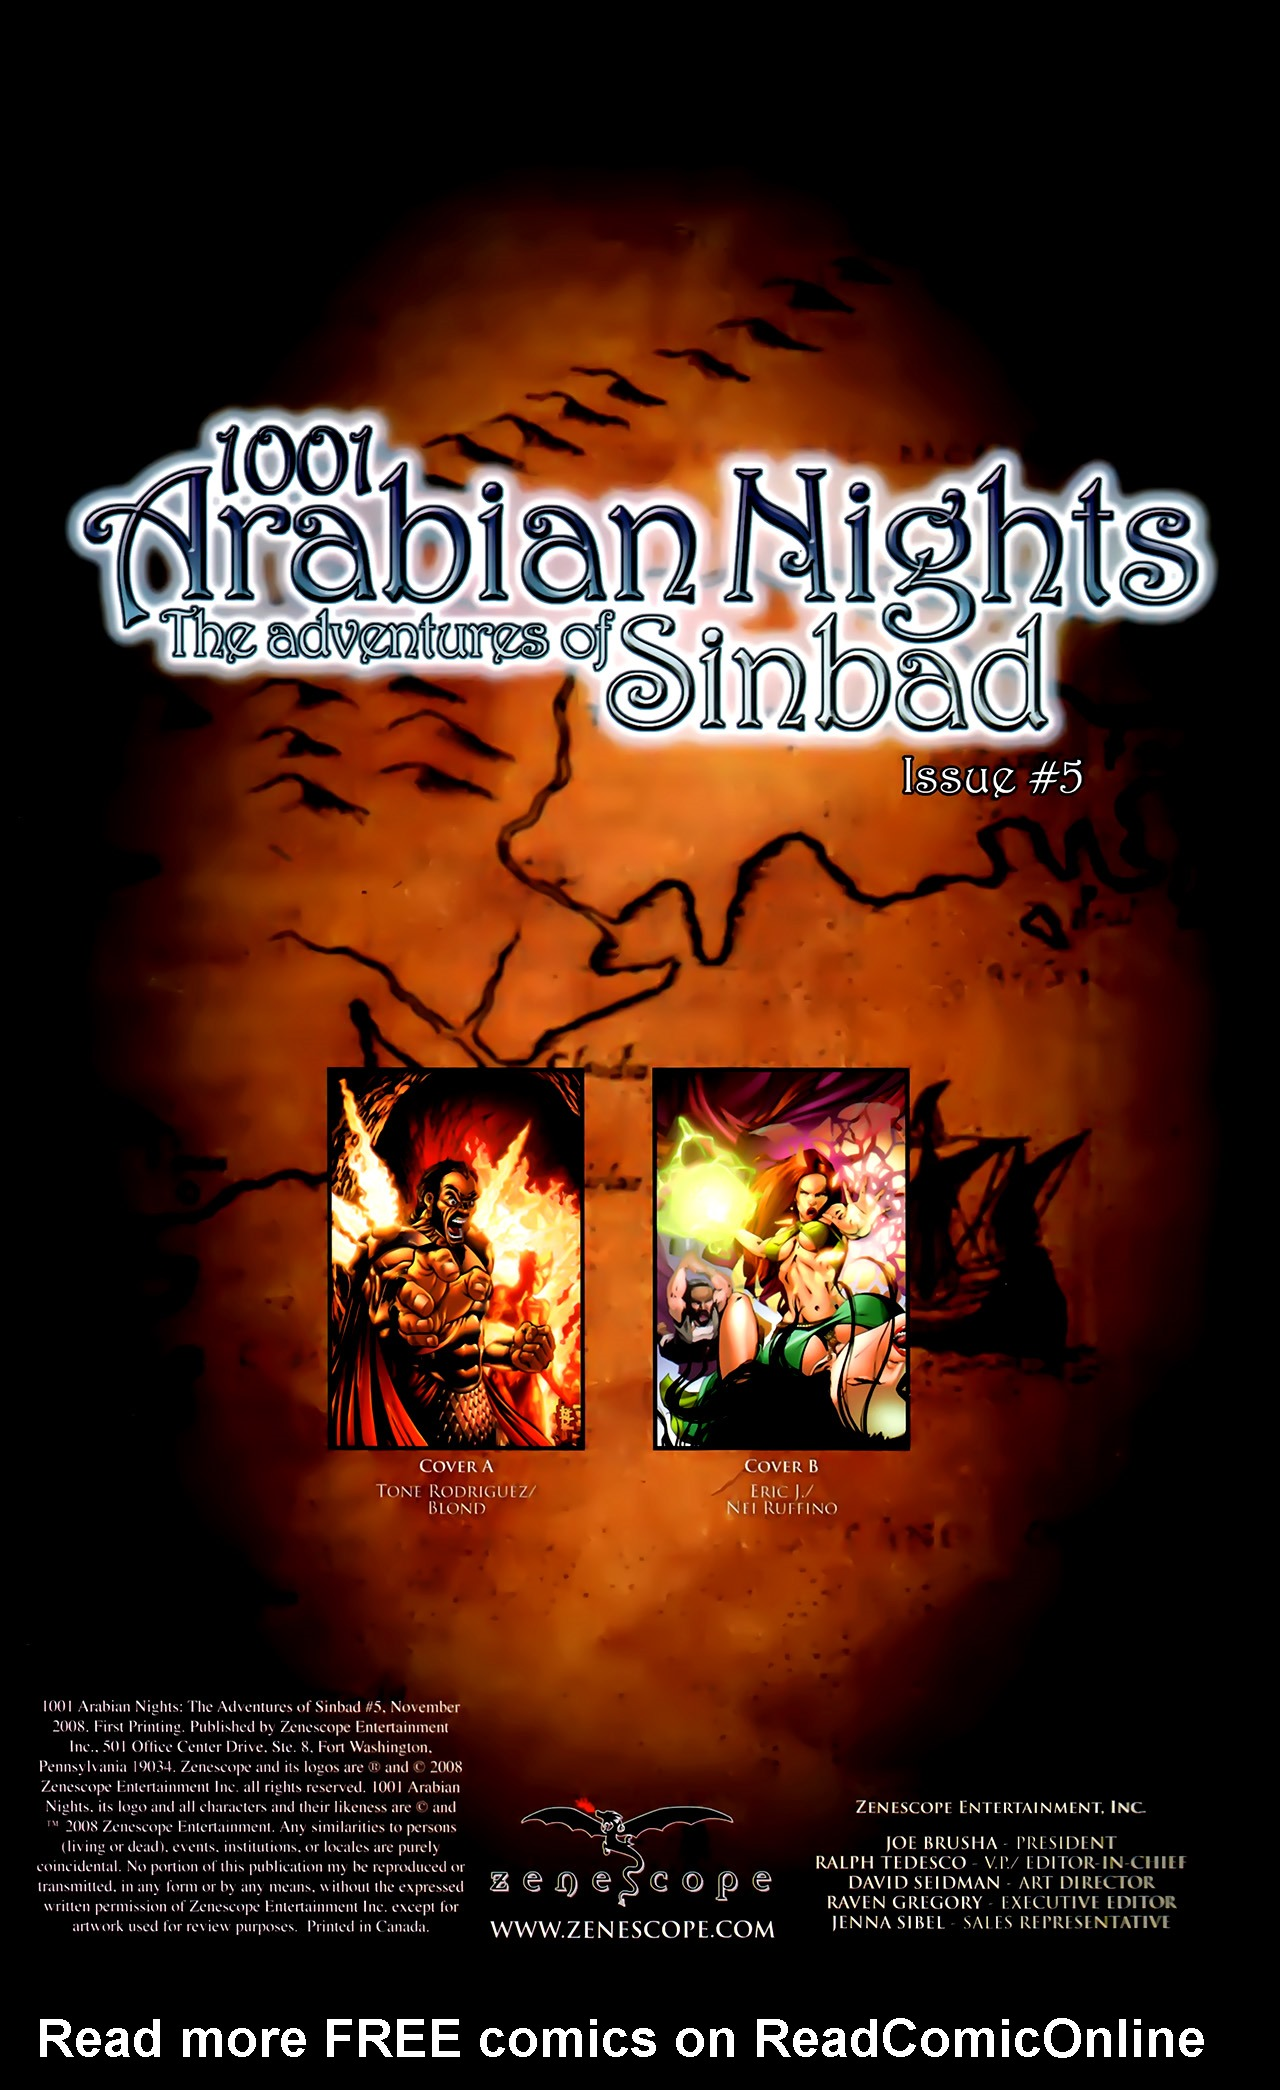 Read online 1001 Arabian Nights: The Adventures of Sinbad comic -  Issue #5 - 3